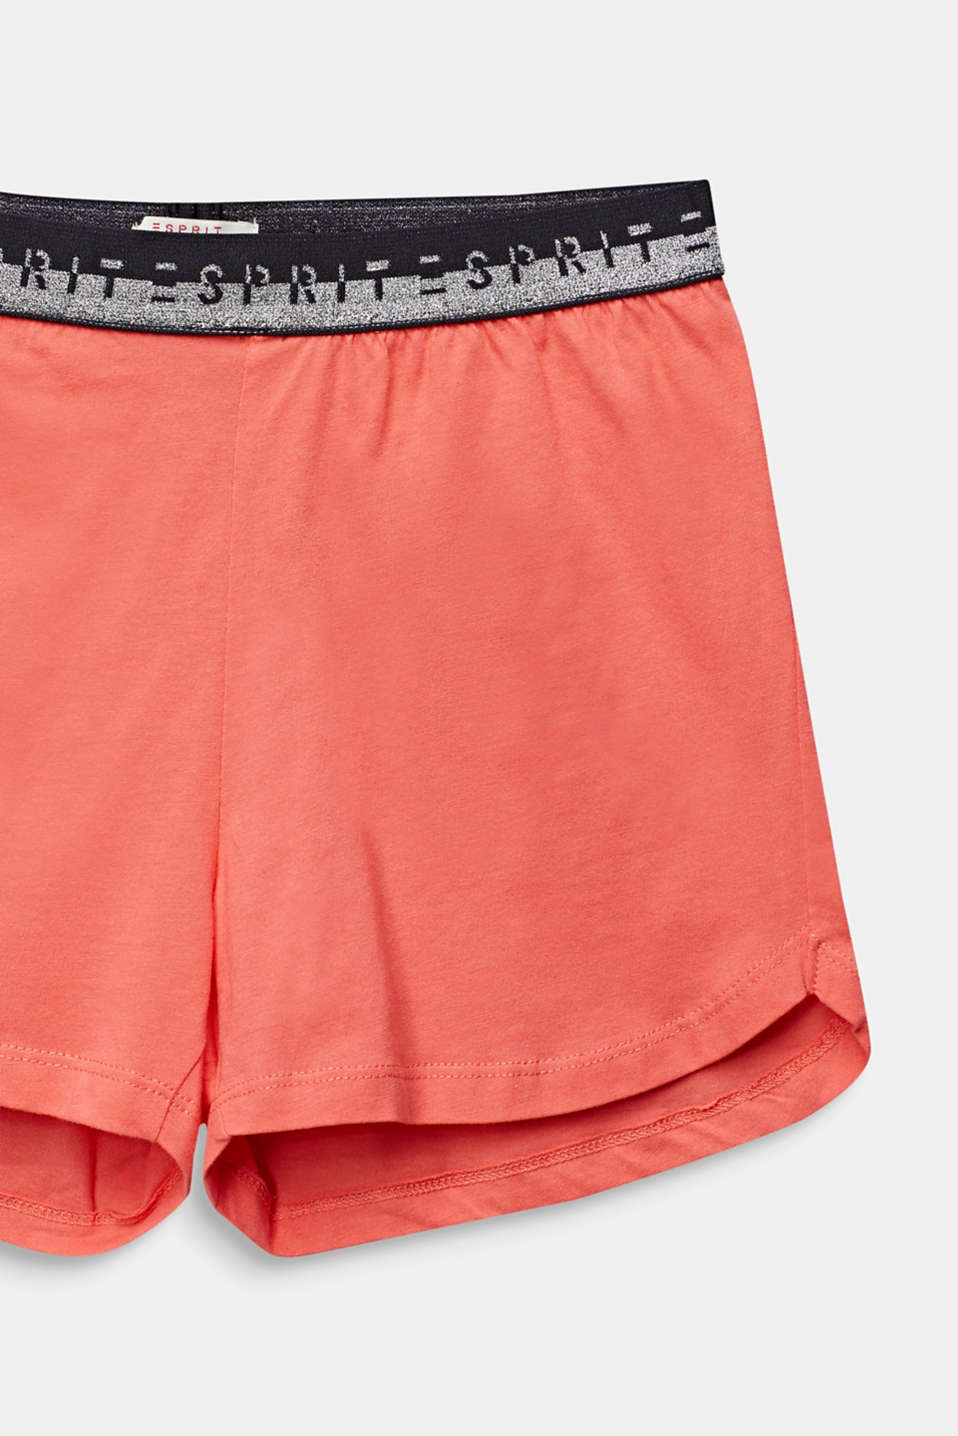 Jersey shorts with a logo waistband, 100% cotton, LCCORAL, detail image number 2